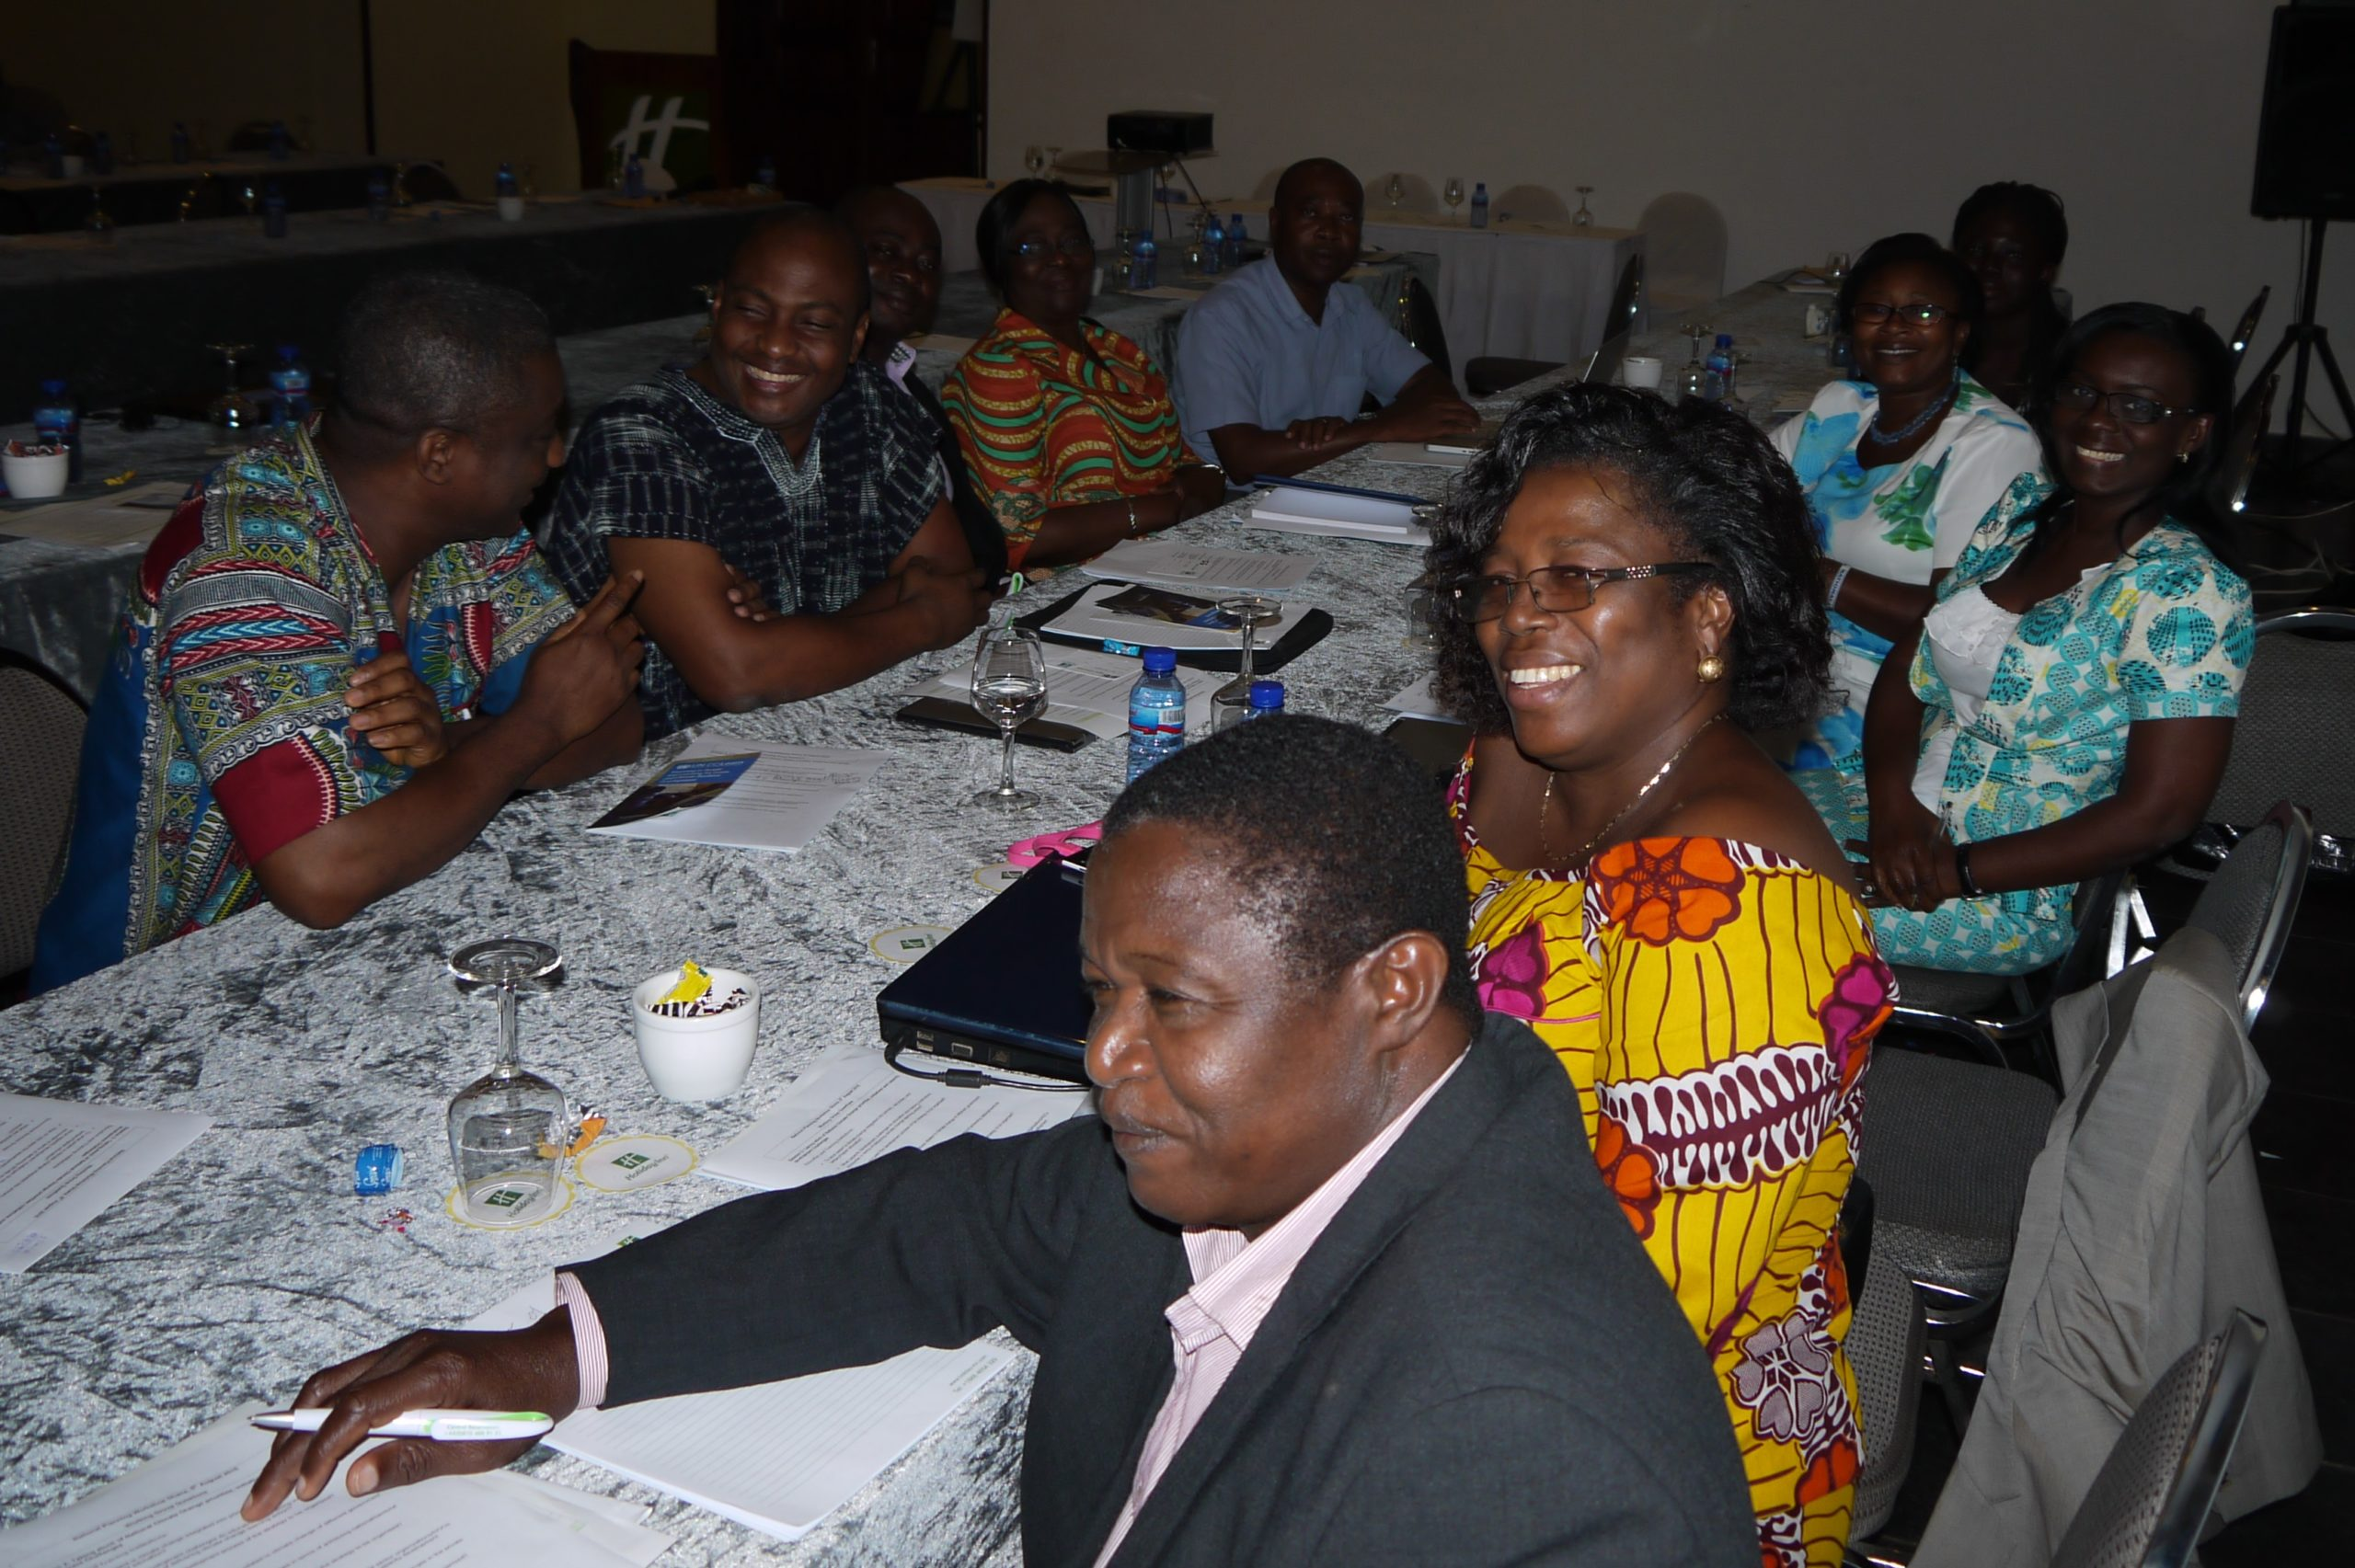 Representatives of education and training institutions in Ghana, discussing existing capacities but also challenges in delivering of climate change learning.